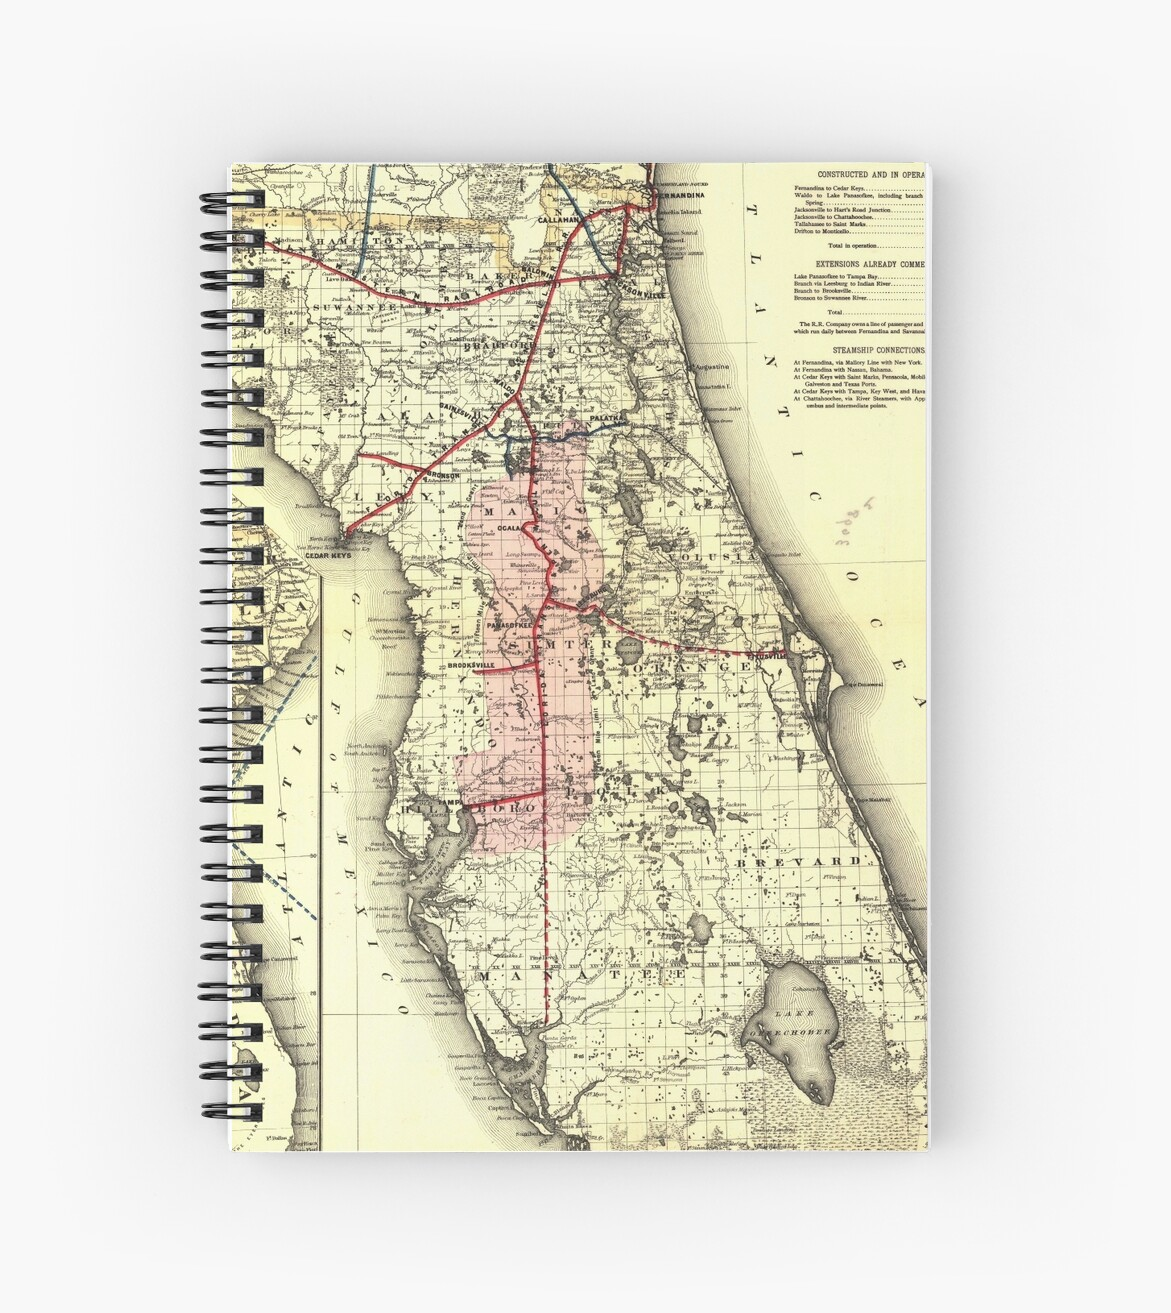 Florida Railroad Map.Vintage Florida Railroad Map 1882 Spiral Notebooks By